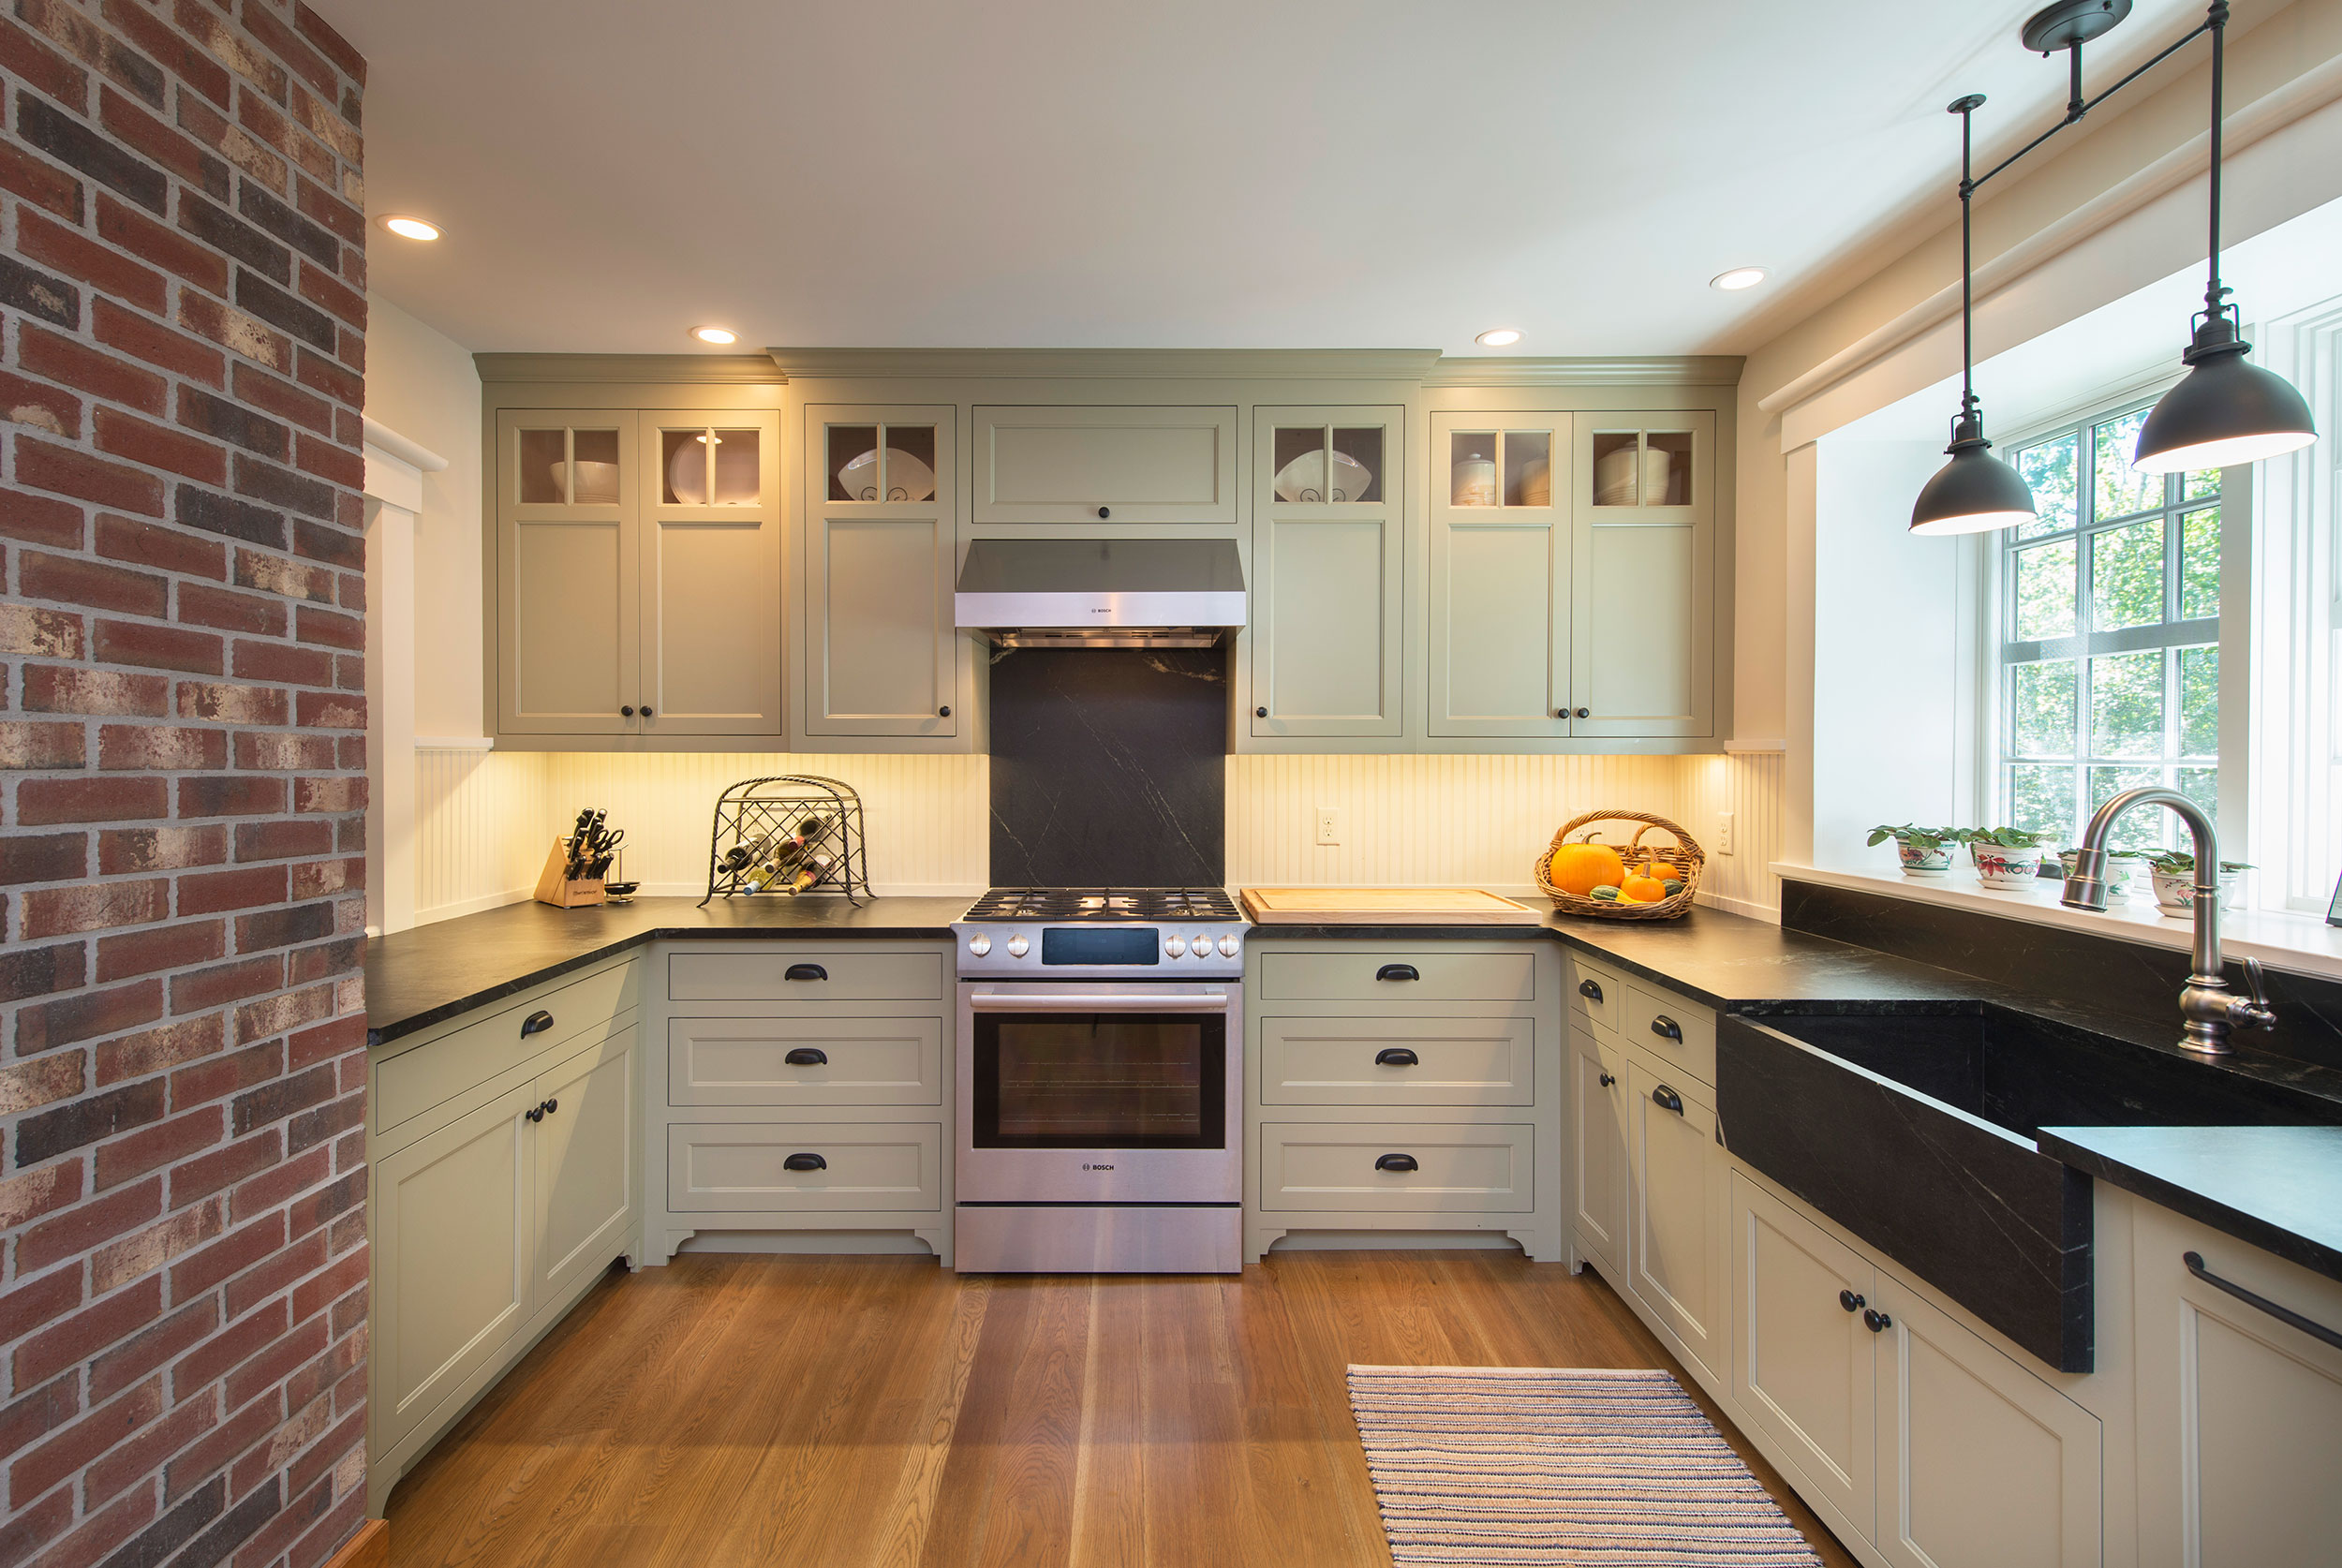 Historic New England Kitchen Simpson Cabinetry